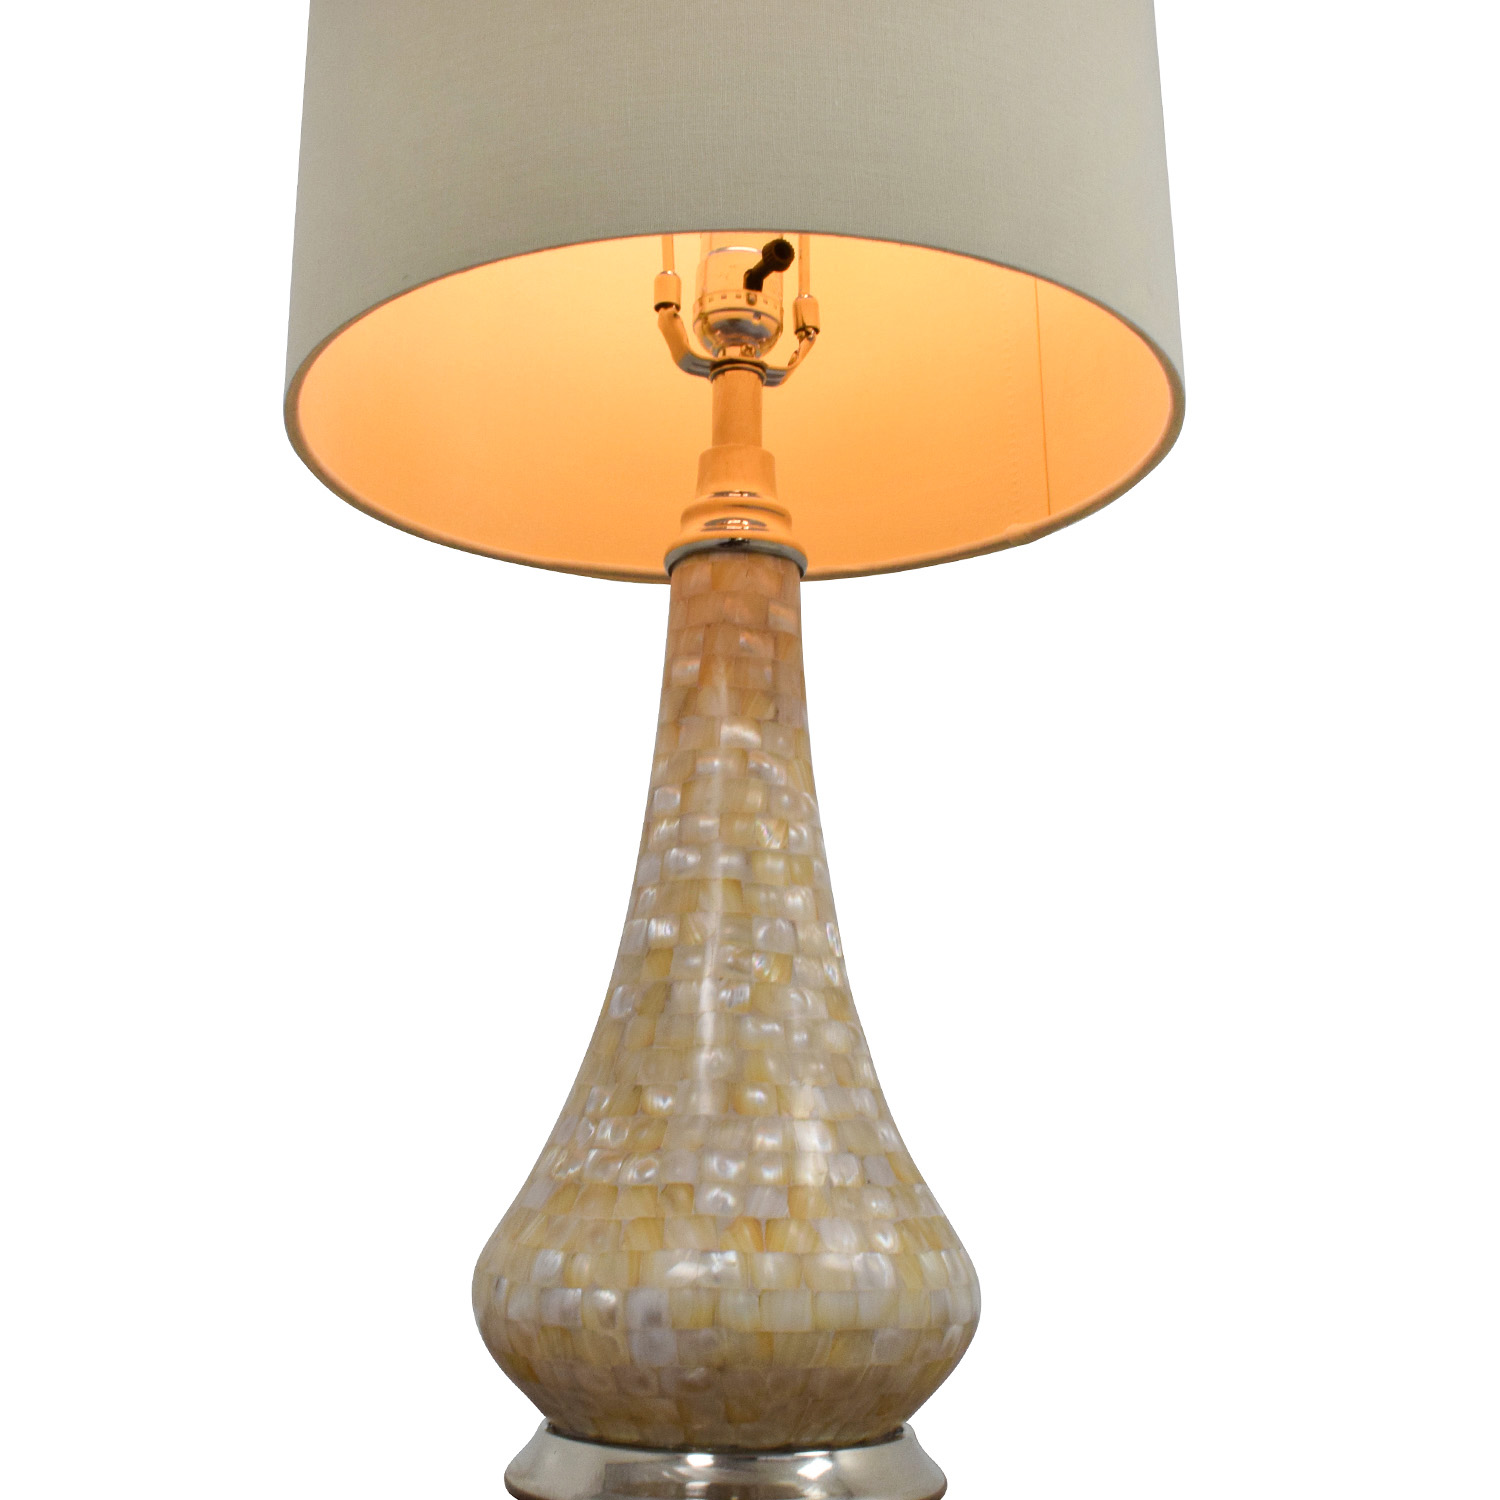 Pier 1 Imports Pier 1 Imports Mother-of-Pearl Accent Lamp discount